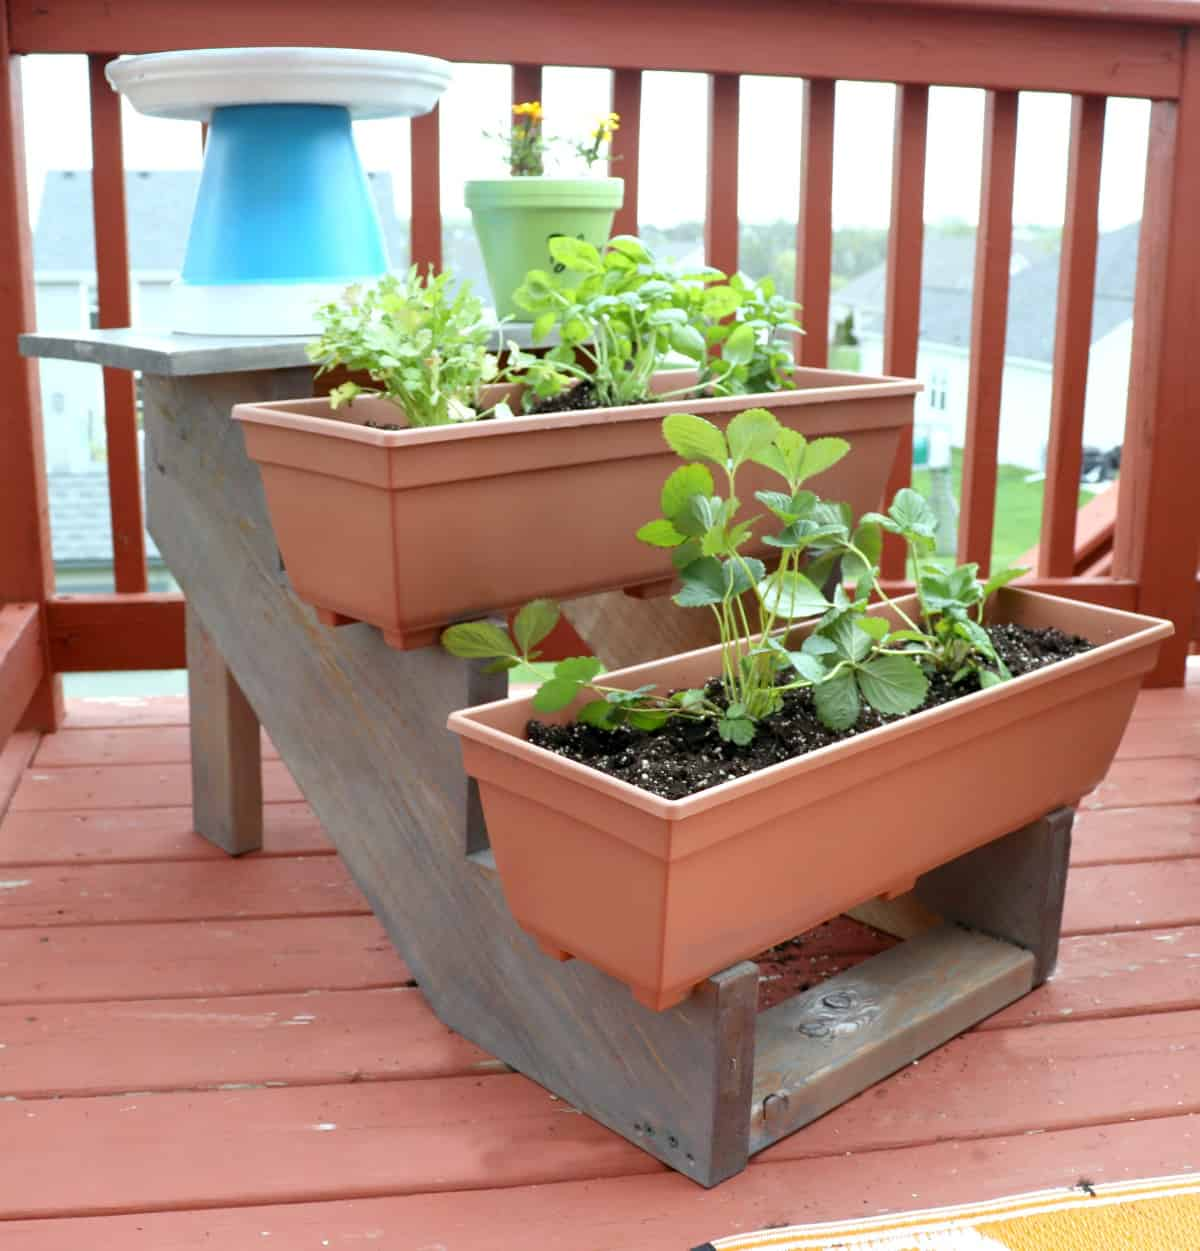 How to Build a Tiered Planter photo 1 - Creative Ramblings